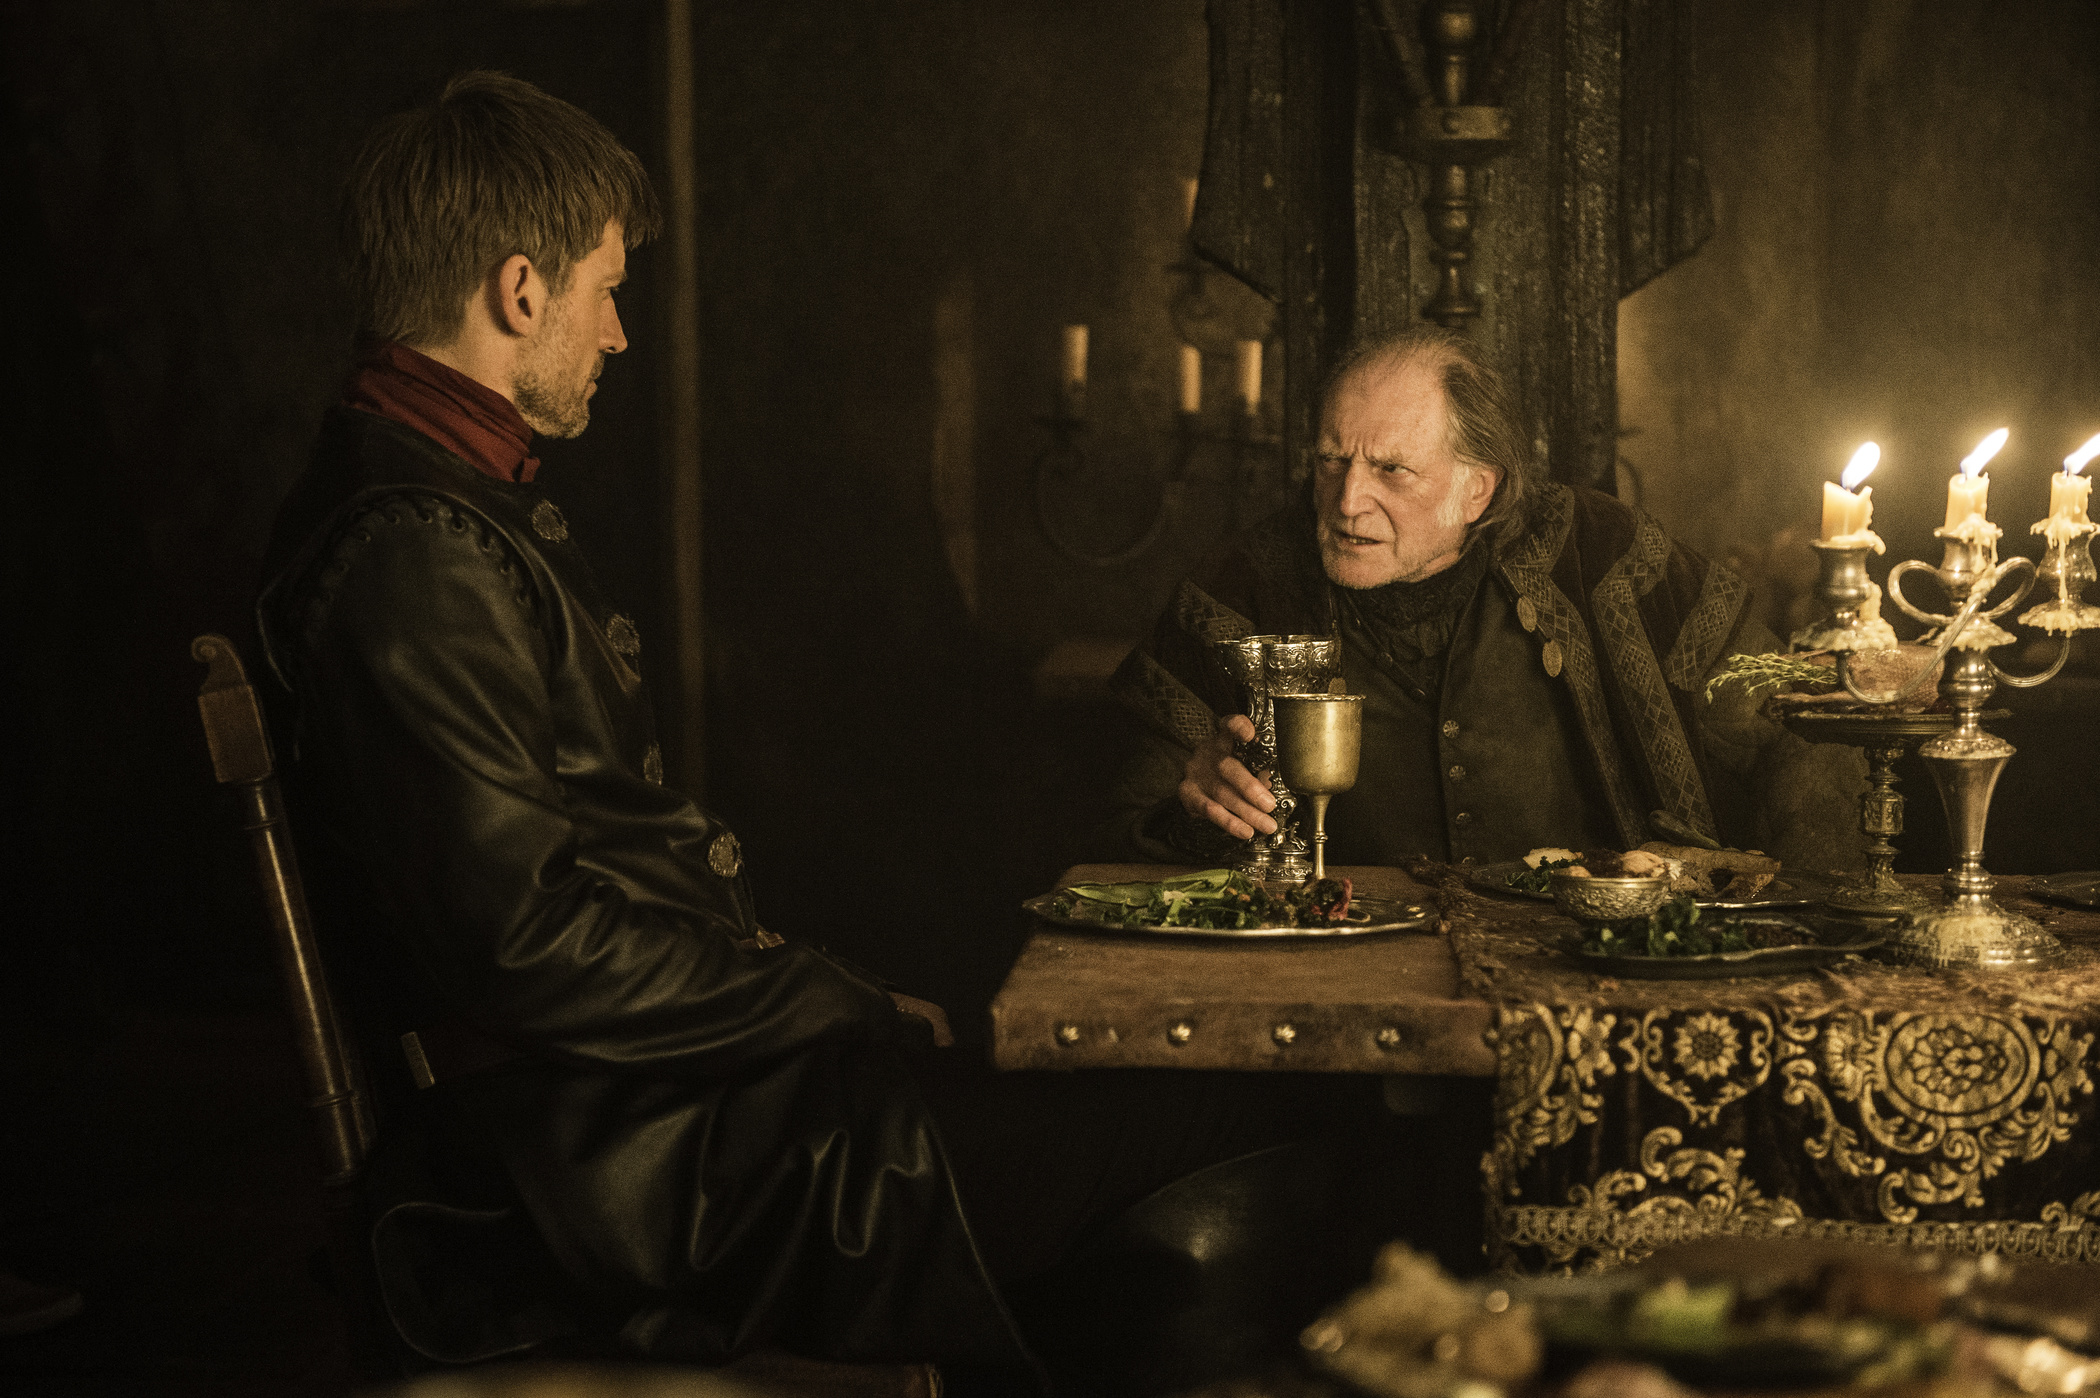 Nikolaj Coster-Waldau as Jaime Lannister and David Bradley as Walder Frey in Game of Thrones